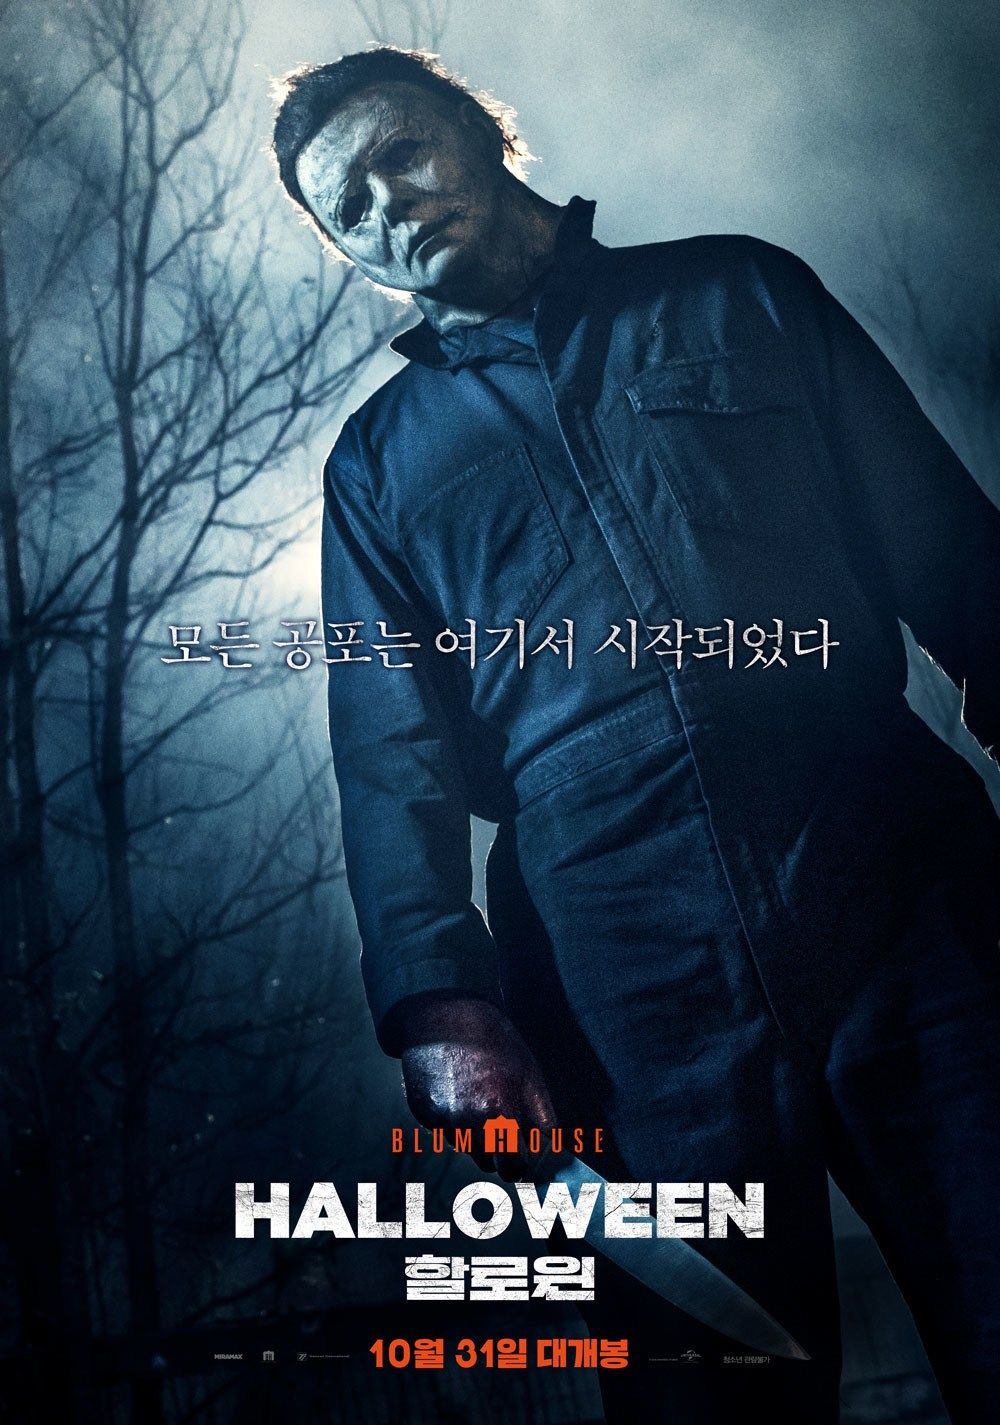 Pin by Kent Brickles on Halloween Michael Myers